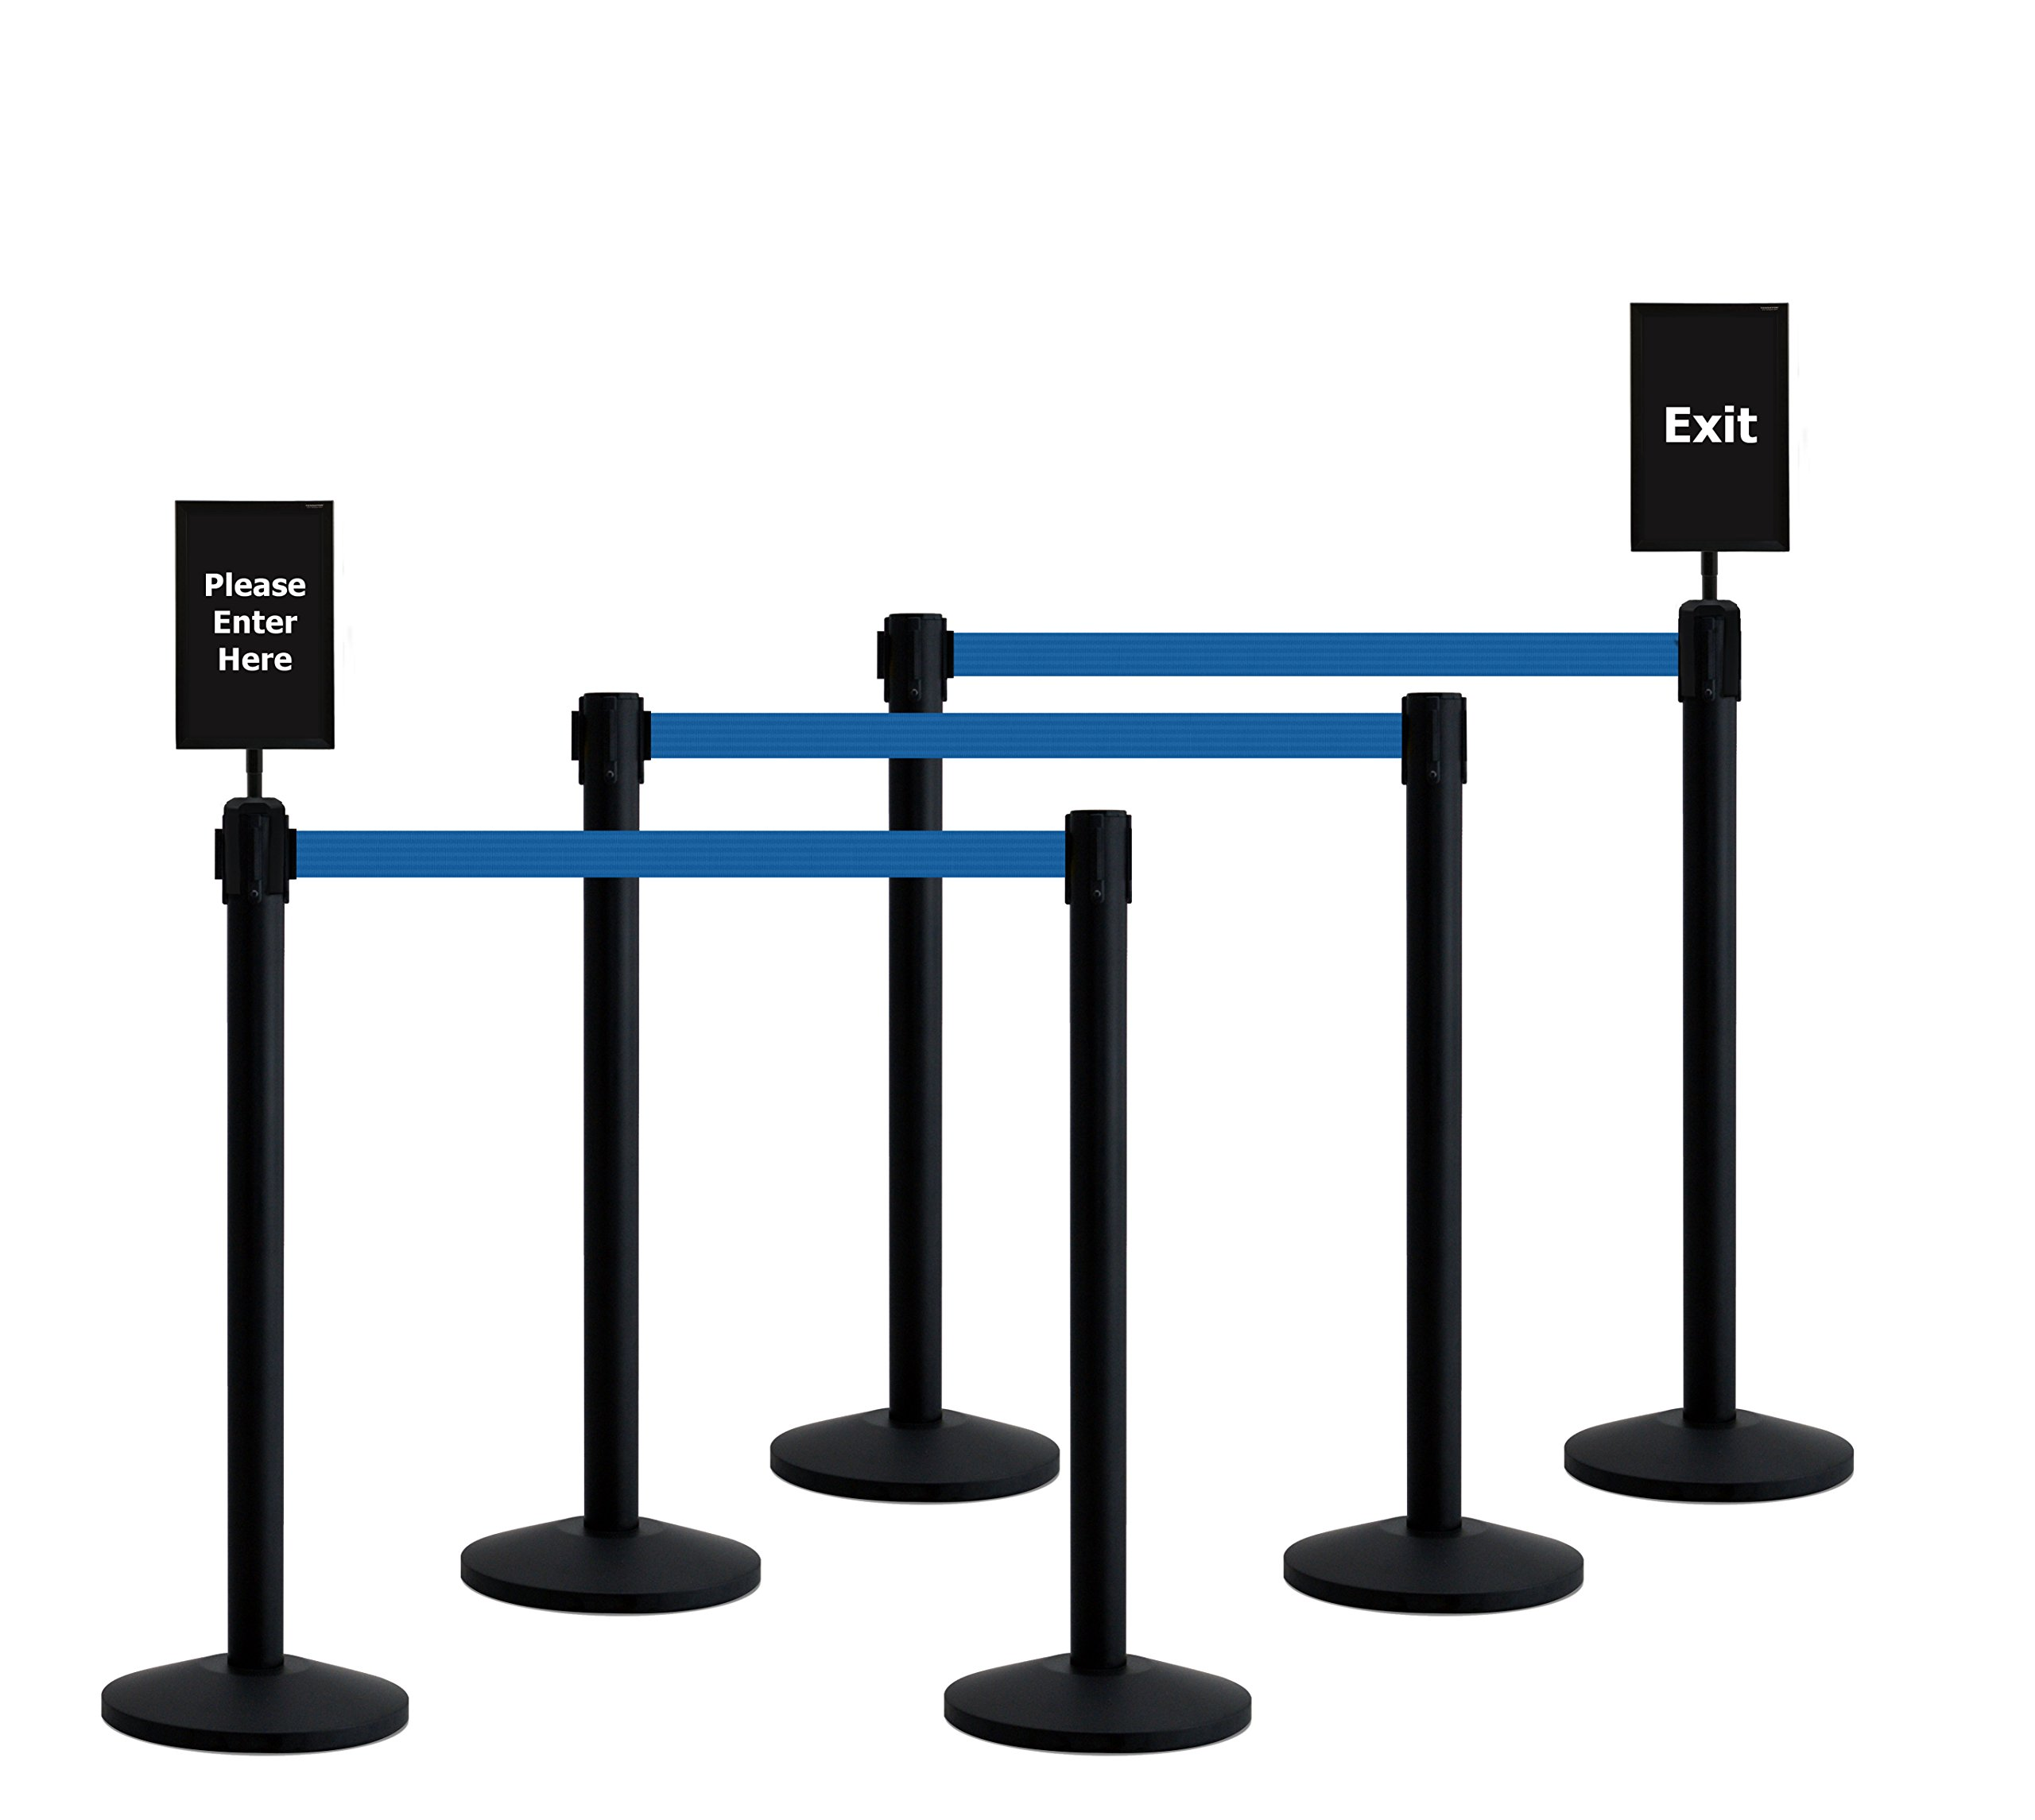 Queueway Crowd Control Retractable Belt Stanchion 6-Pack Kit with Signs USA Made (Blue Webbing) by Queueway